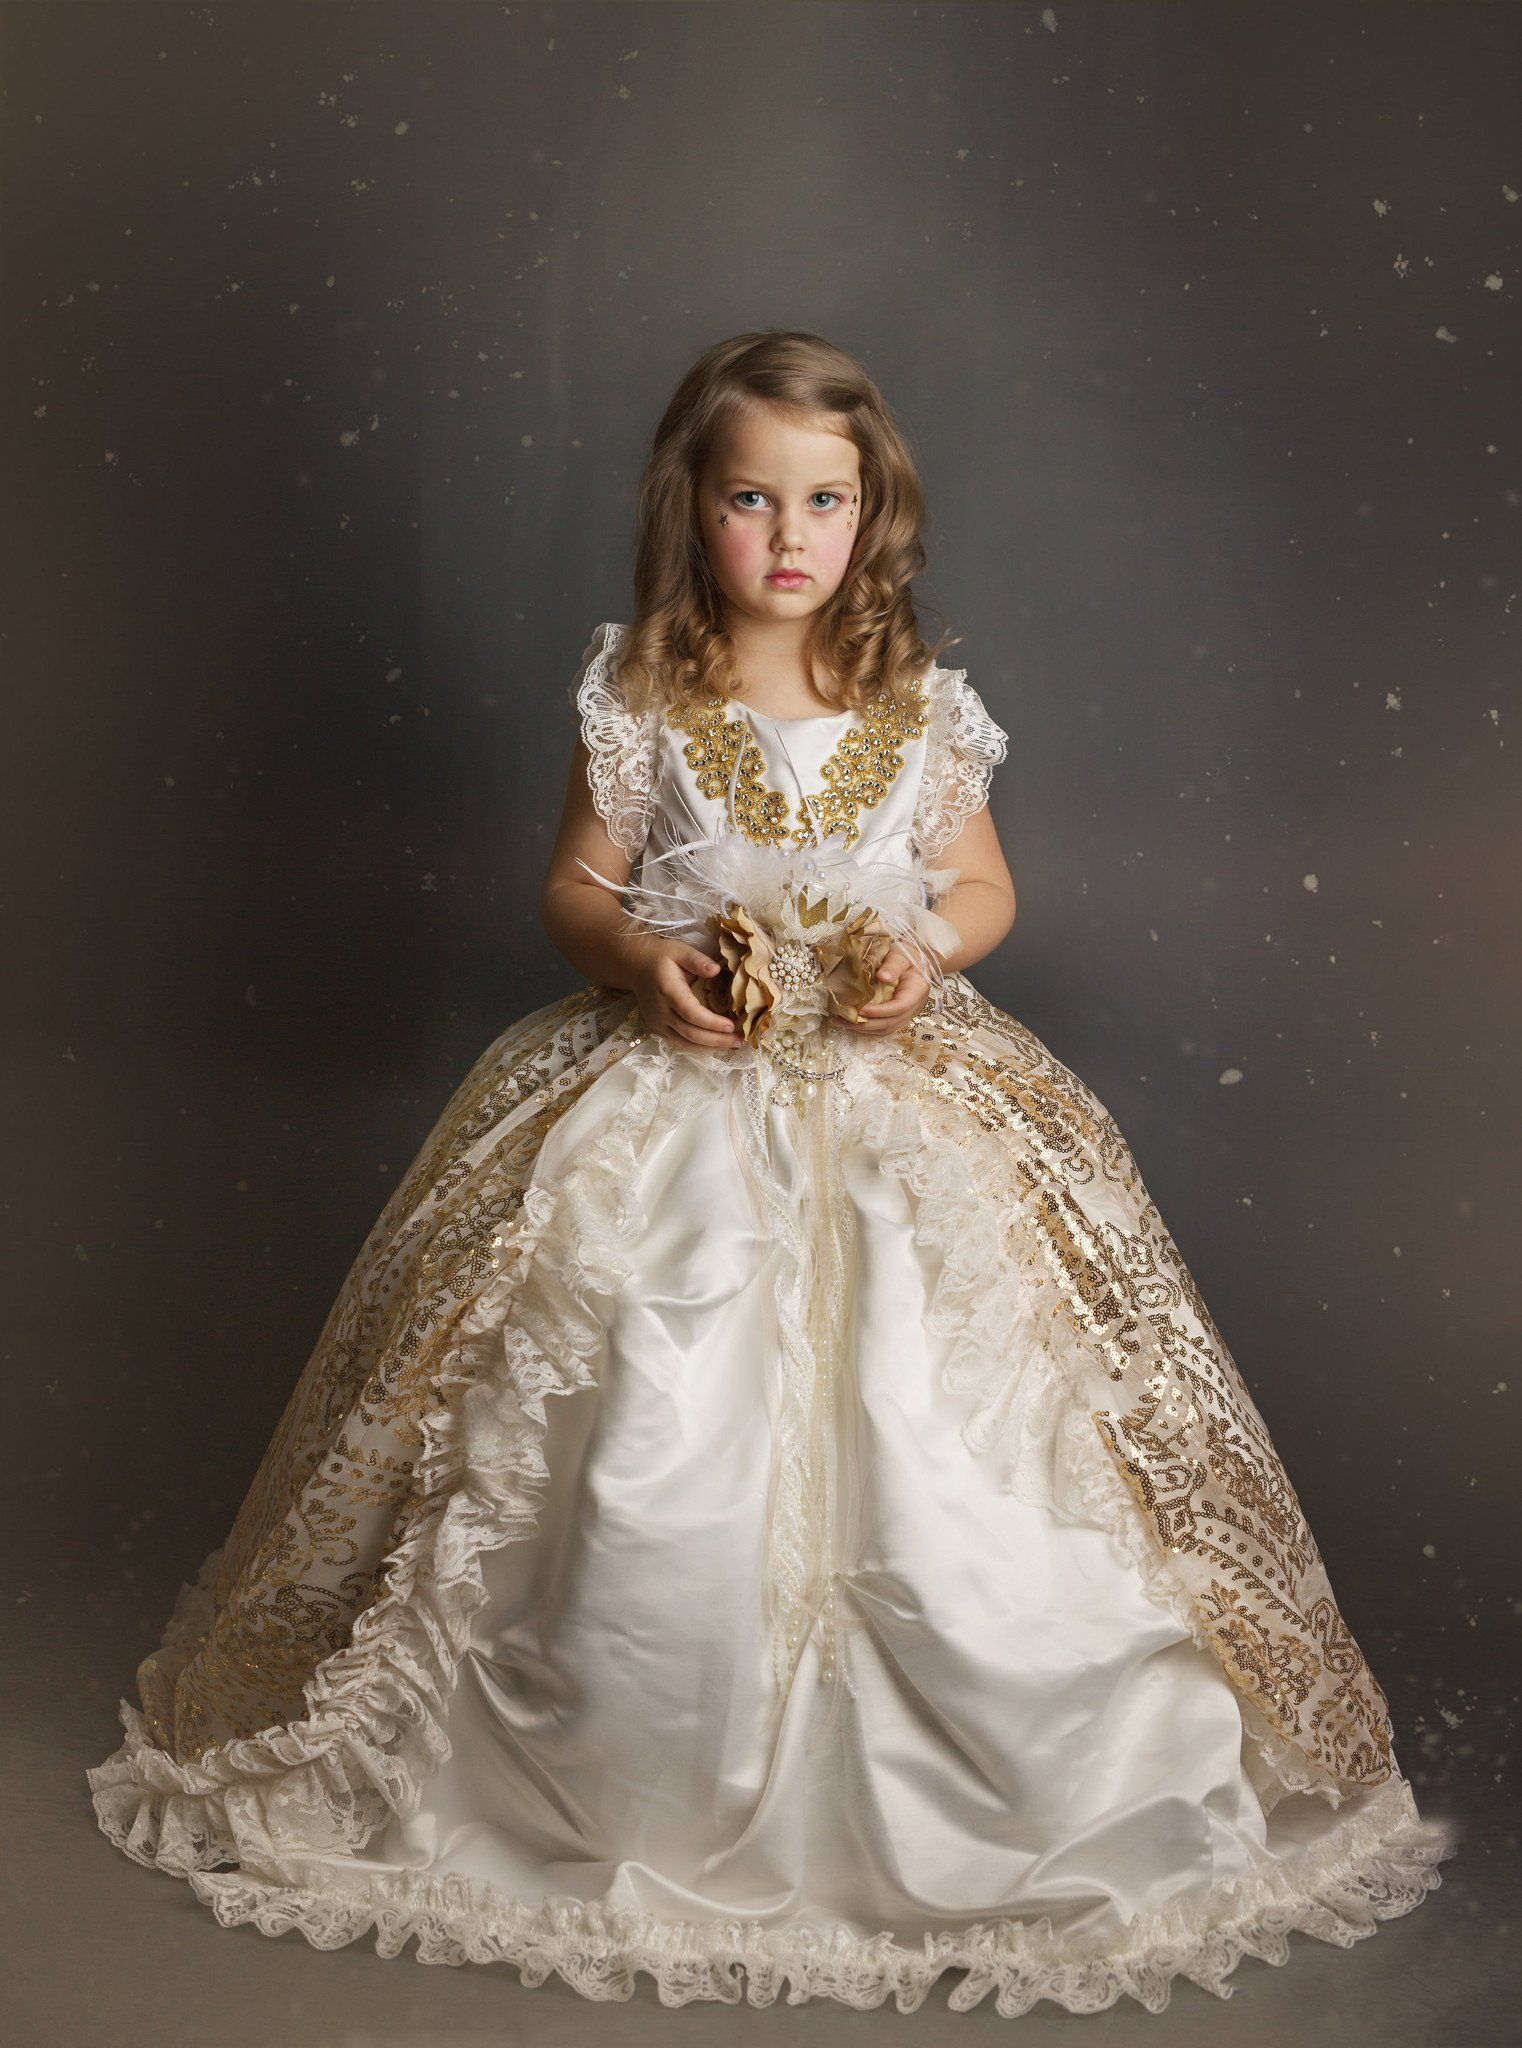 Gold Dust Fairytale A Beautiful Special Occasion Gown